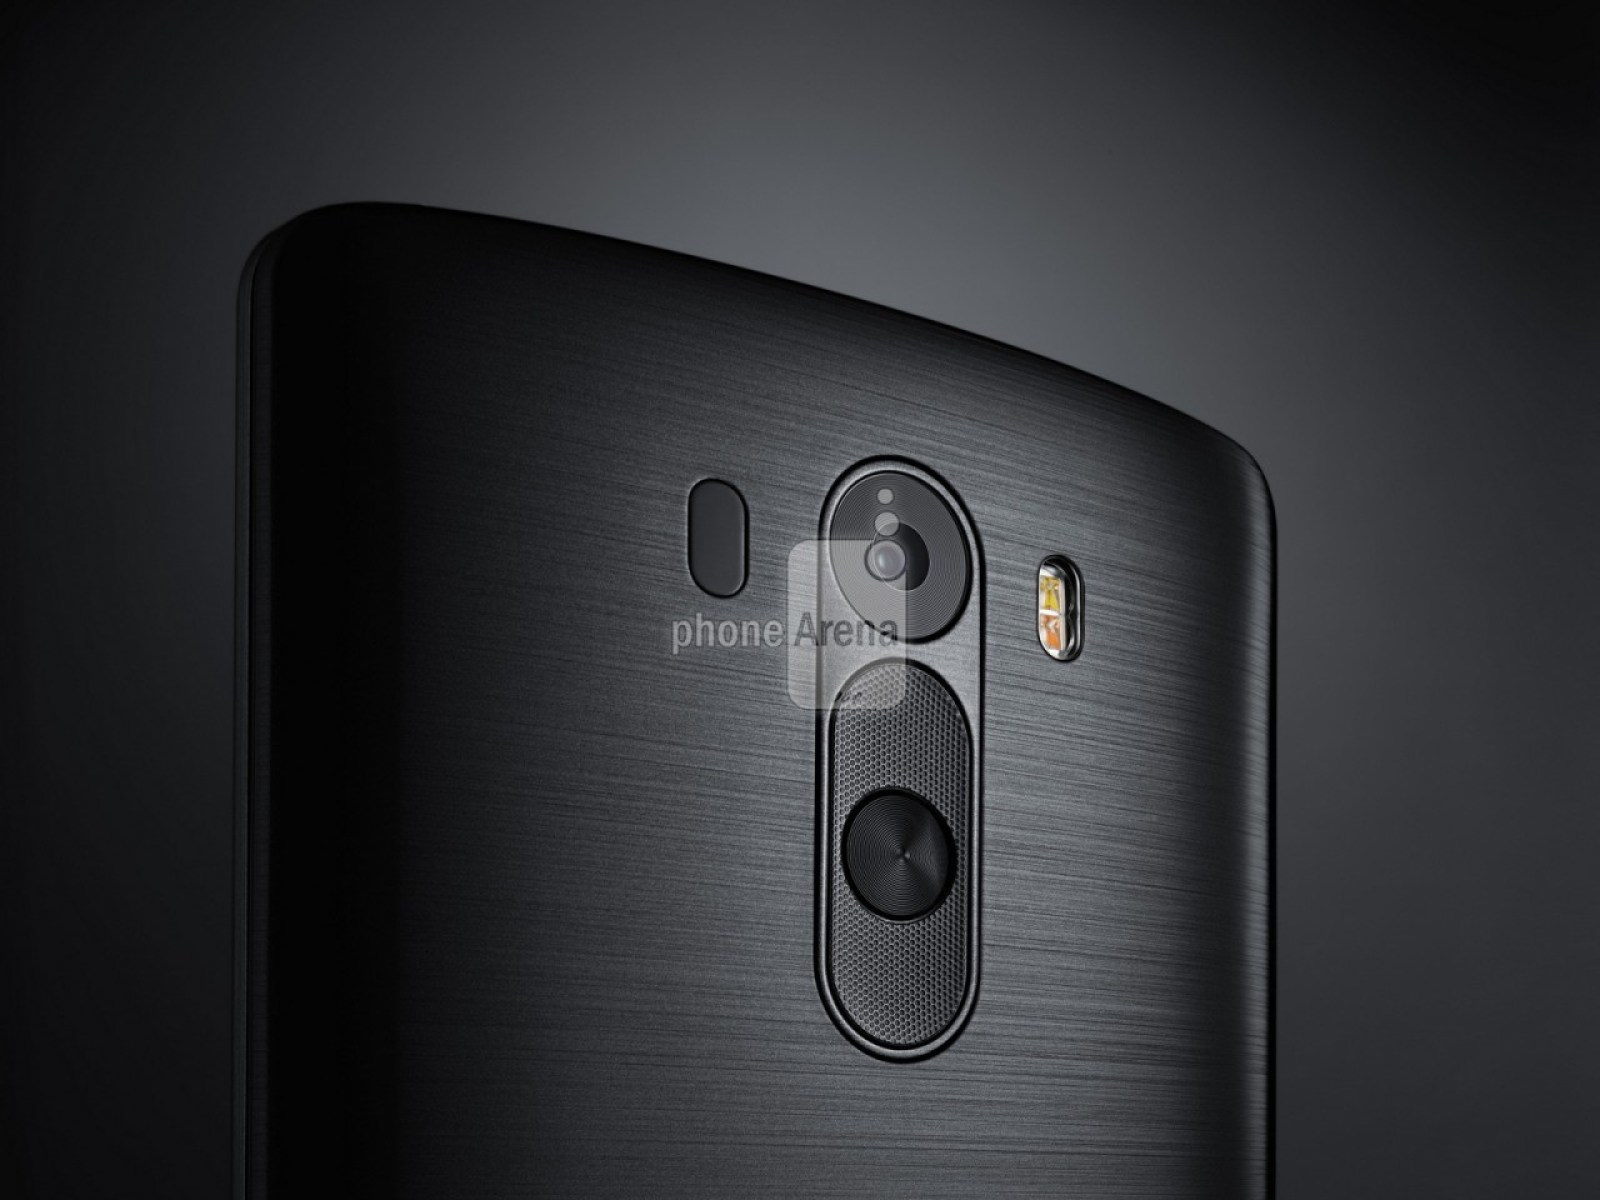 LG-G3-press-renders-appear-3